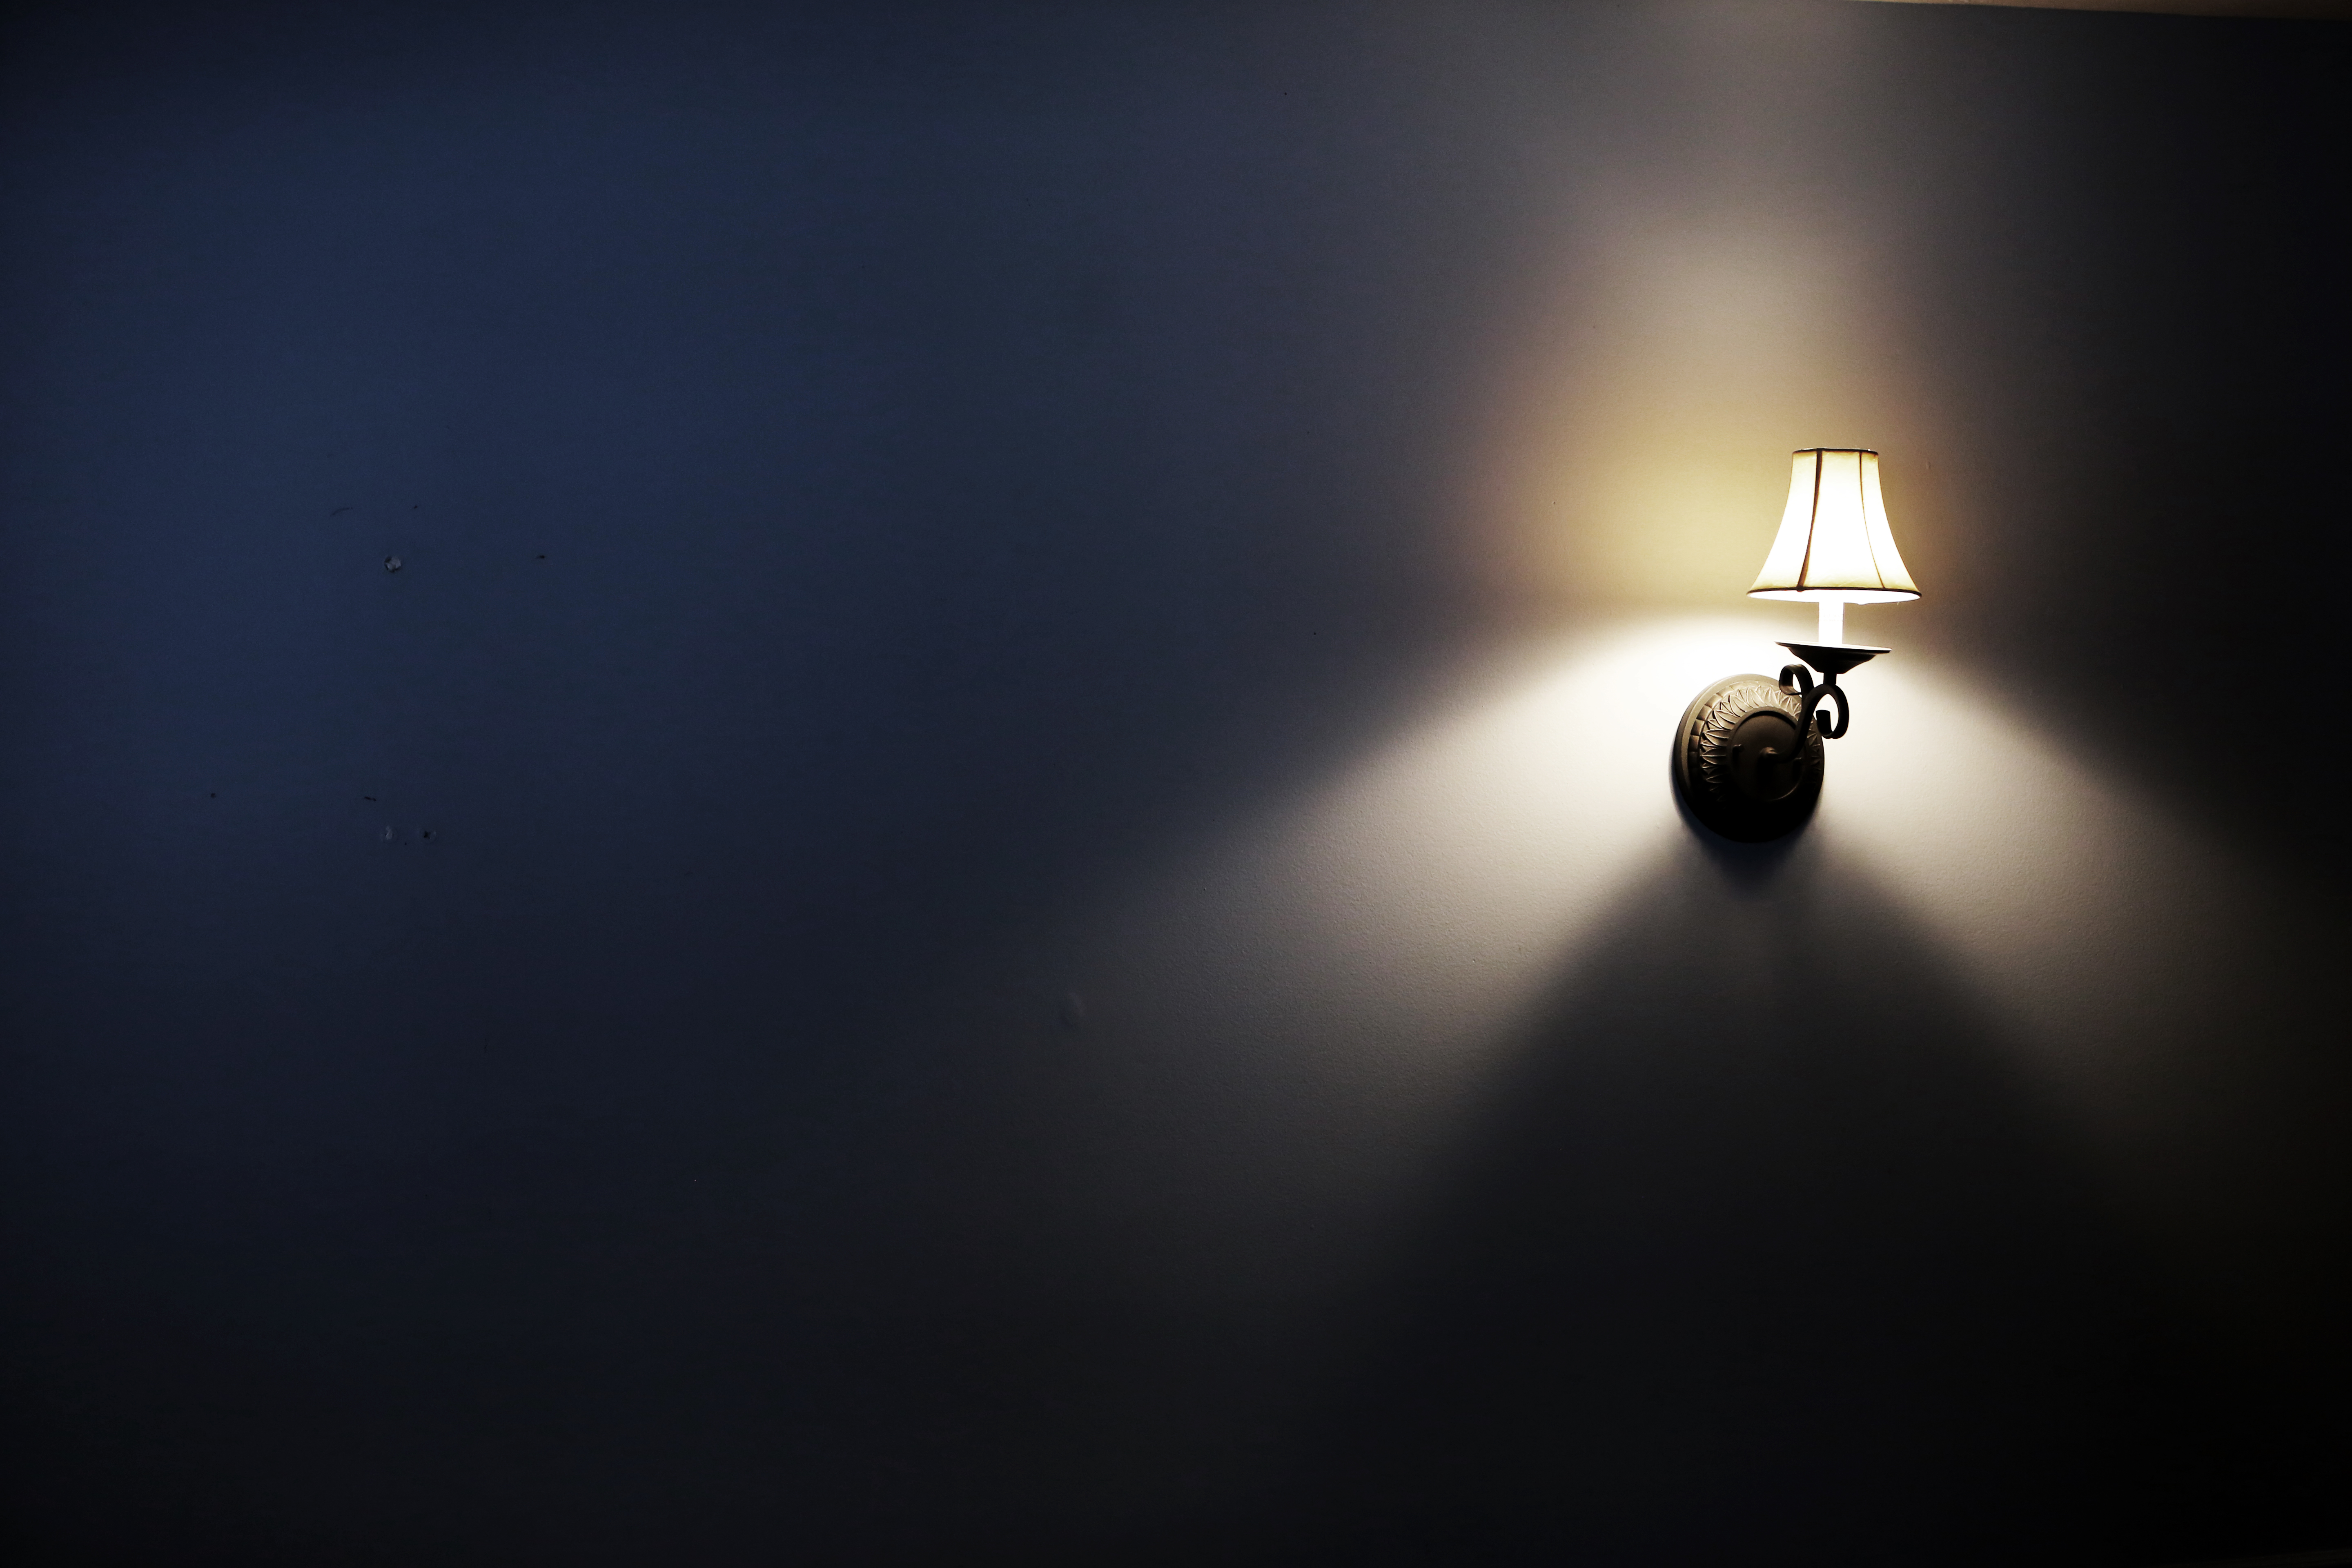 wall lamp free stock photos life of pix. Black Bedroom Furniture Sets. Home Design Ideas